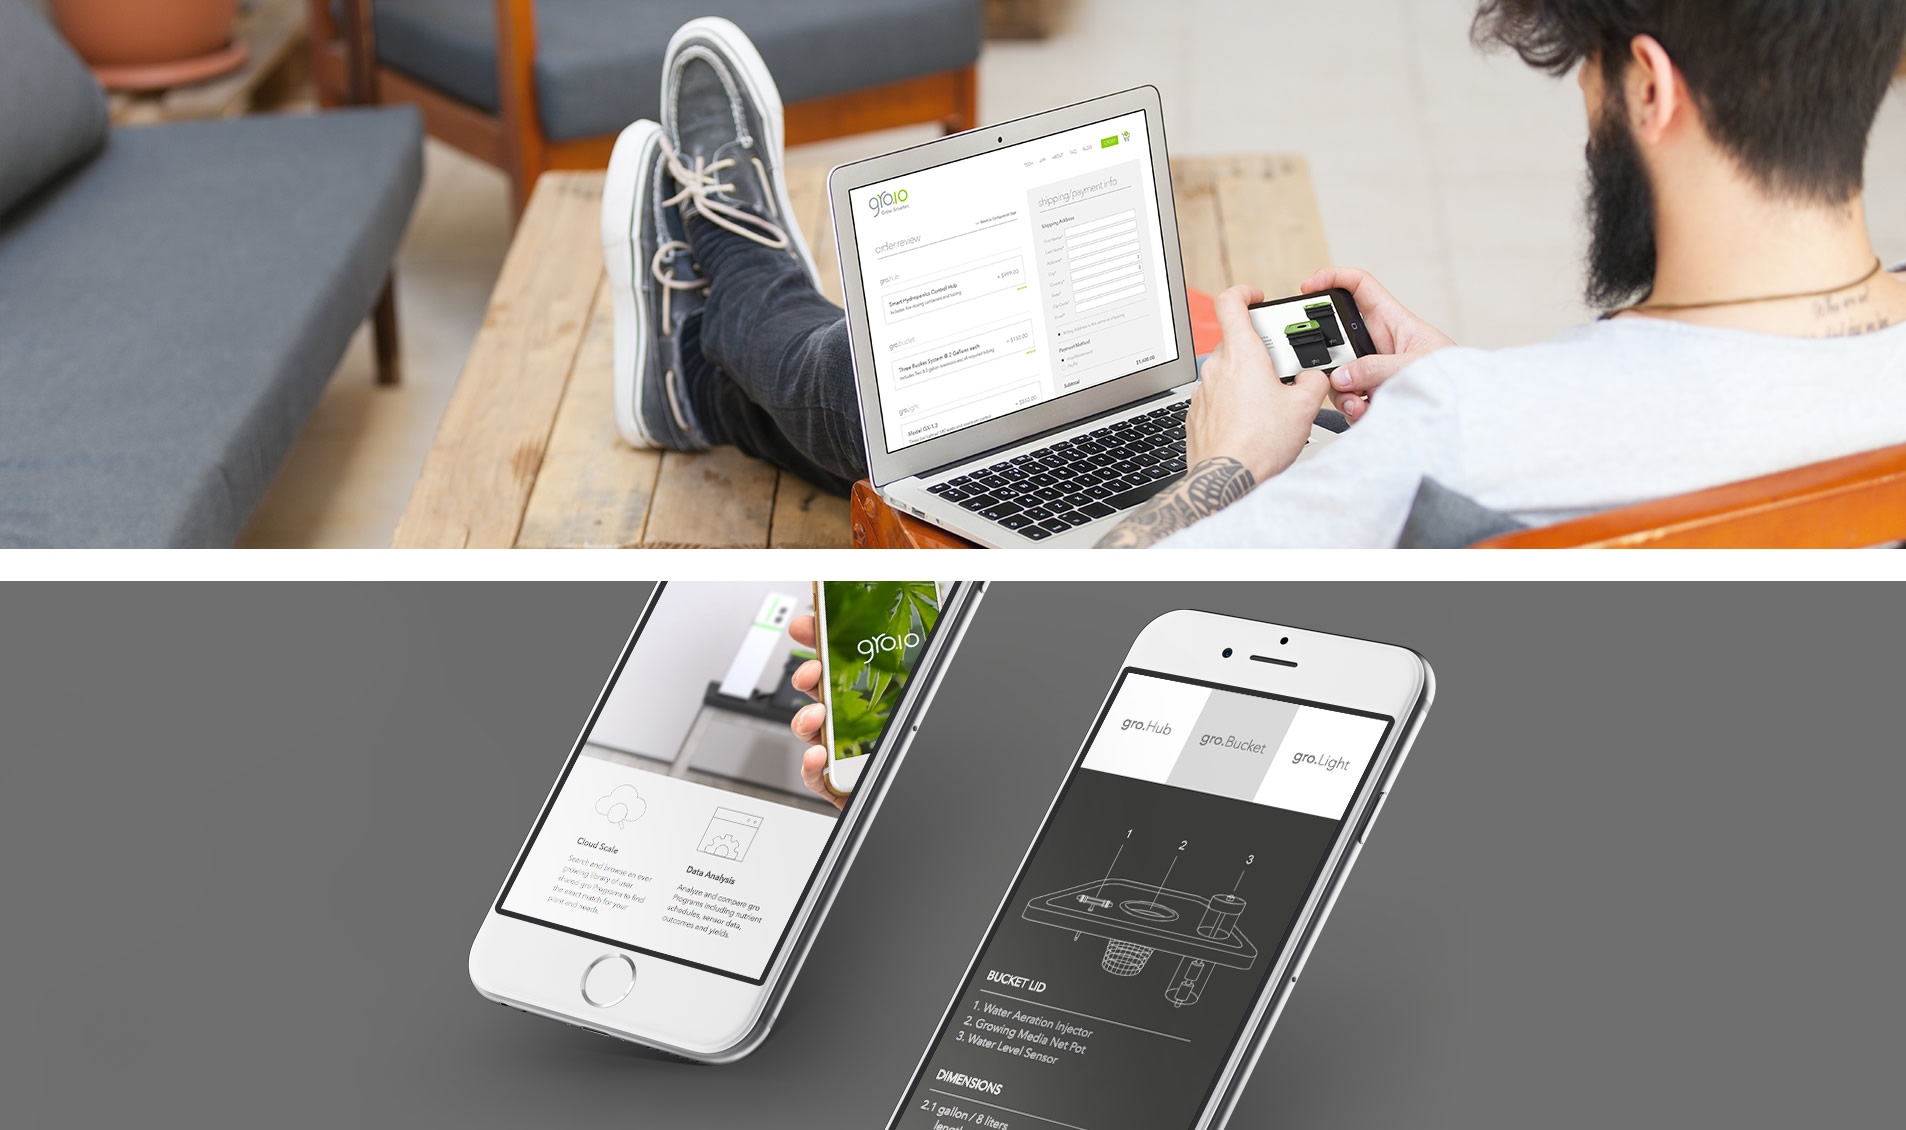 groio mobile and website designs